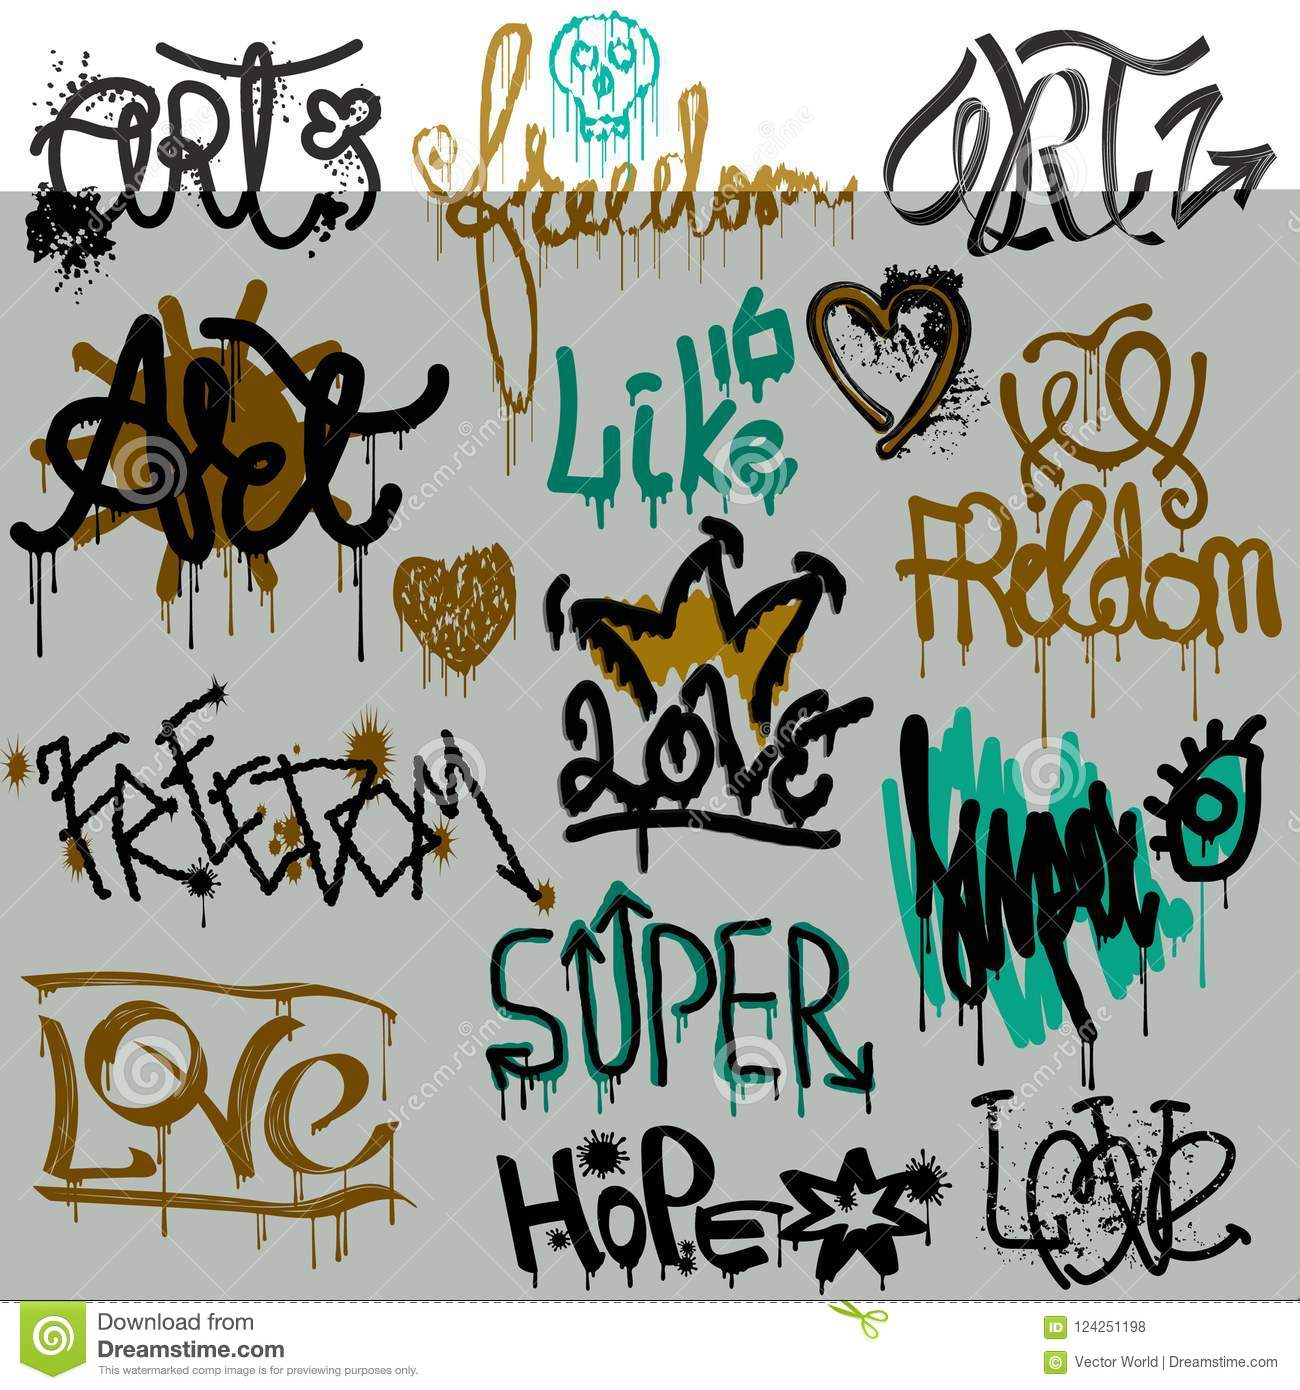 Graffity vector street art graffiti grunge font by spray or brush stroke on wall illustration urban set of love freedom text lettering isolated on white